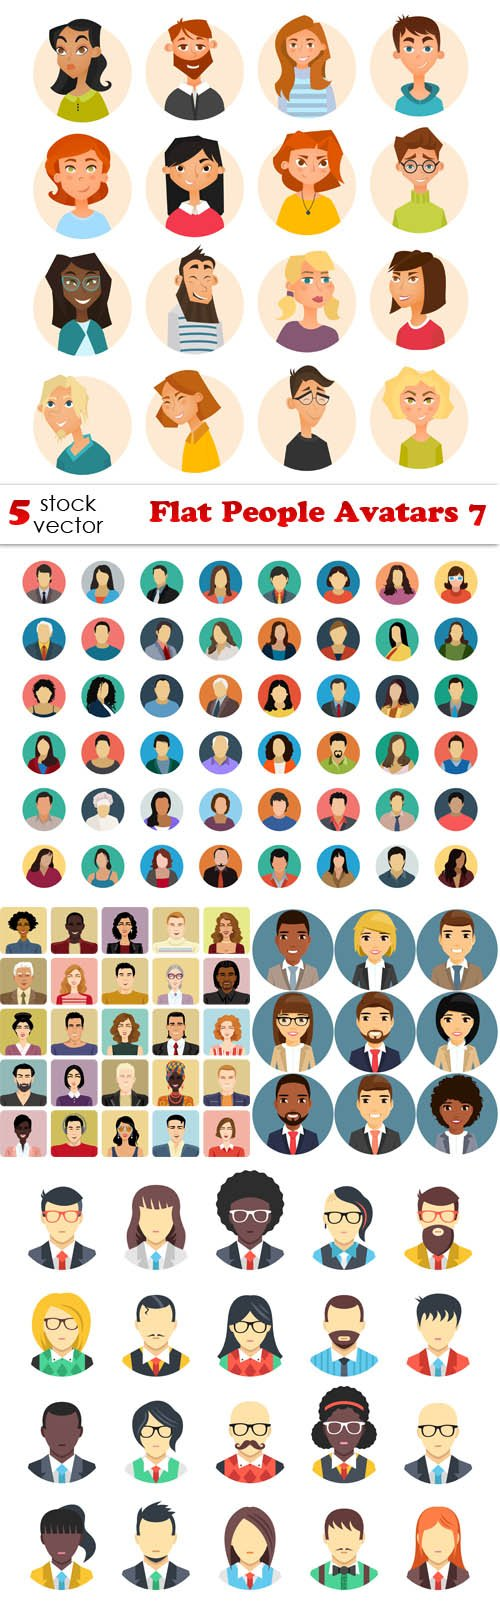 Vectors - Flat People Avatars 7